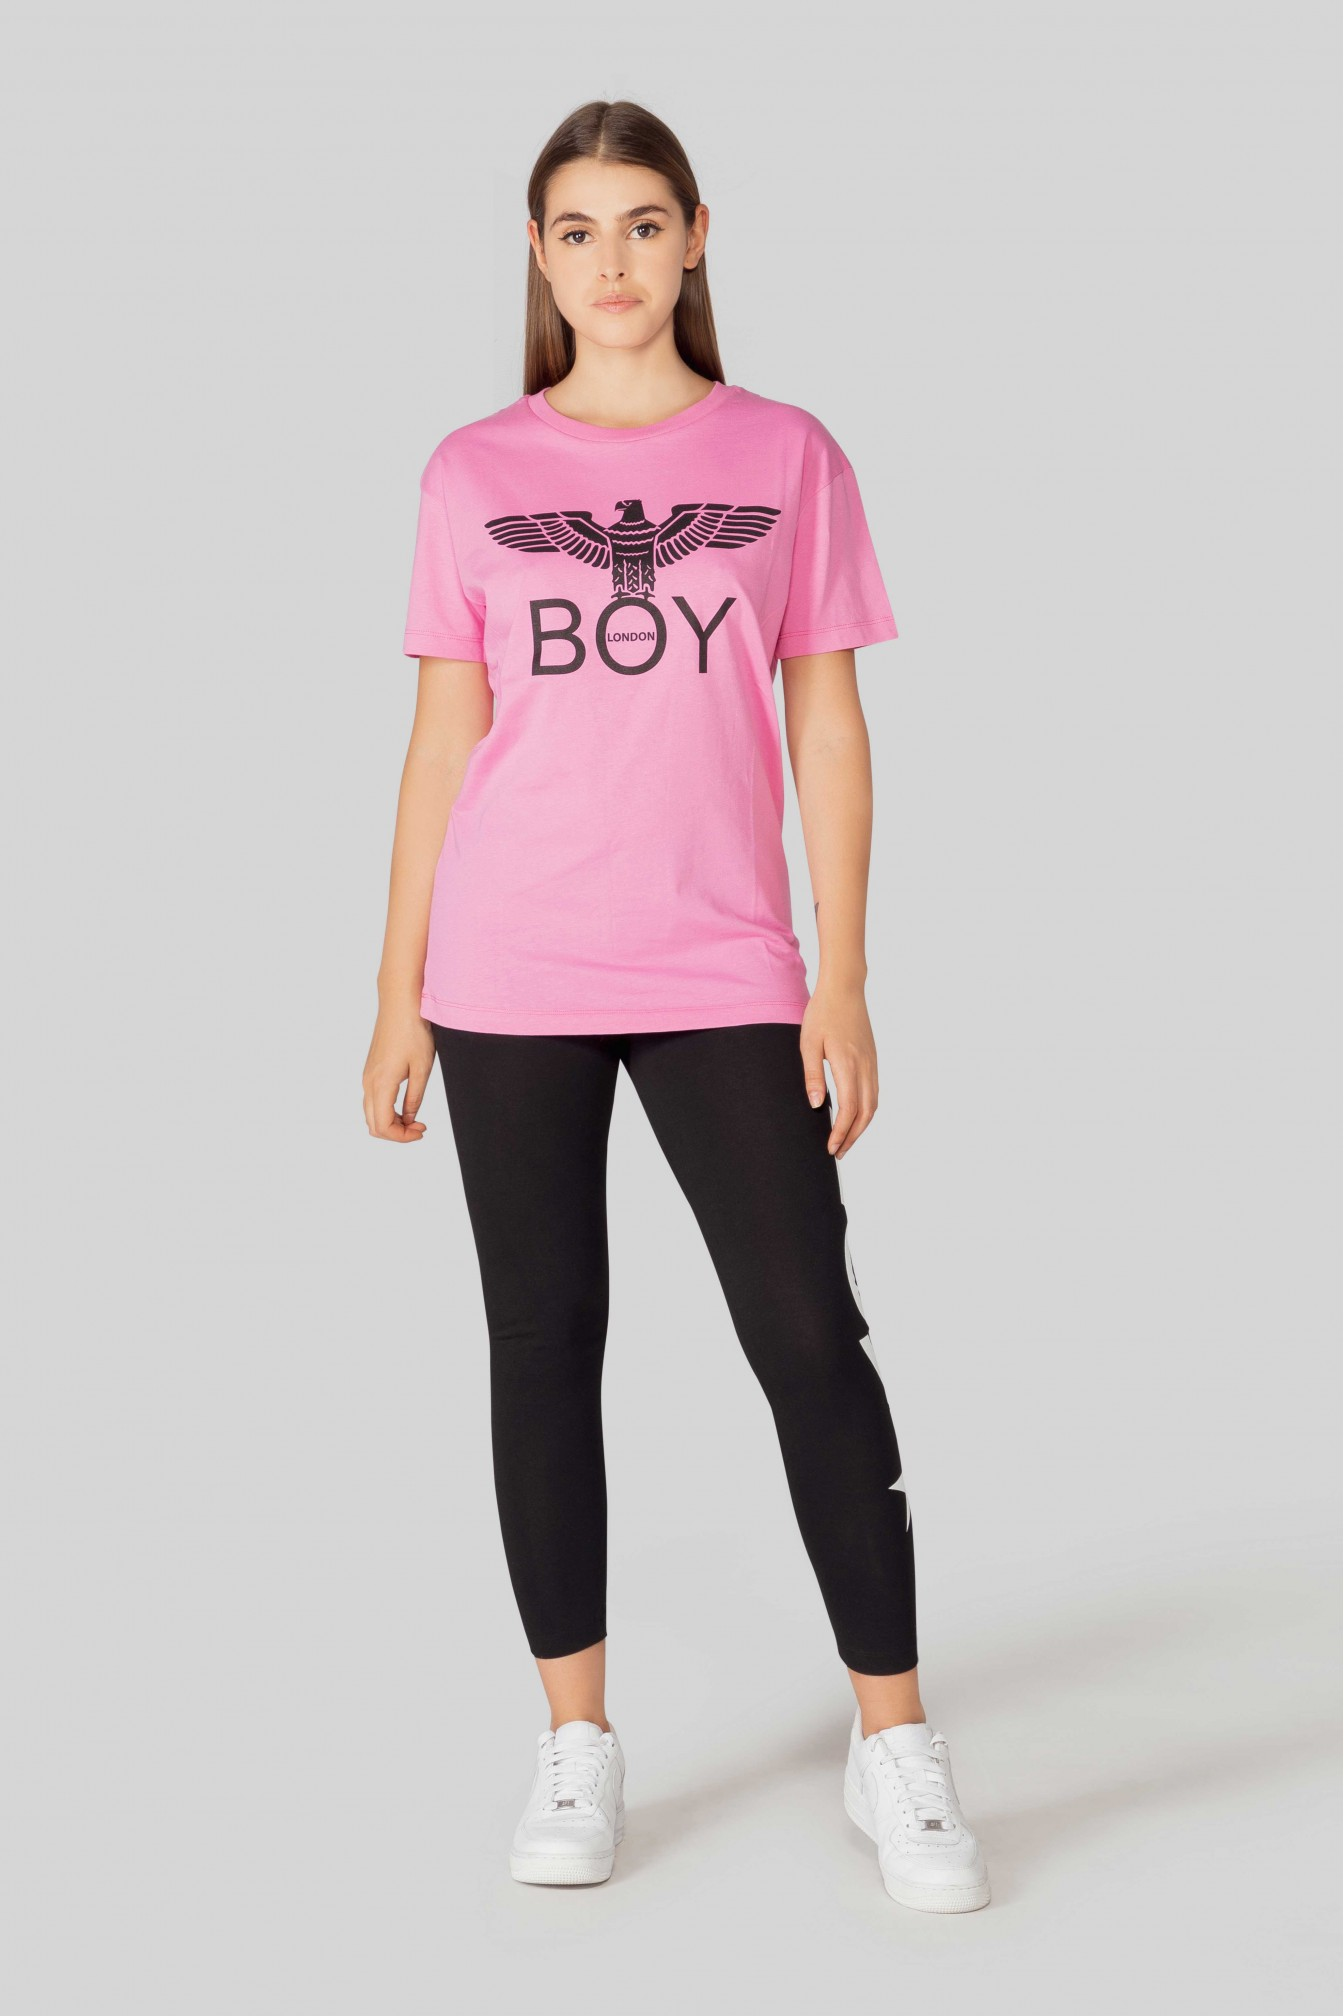 T-SHIRT - BLD2611 - BOY LONDON